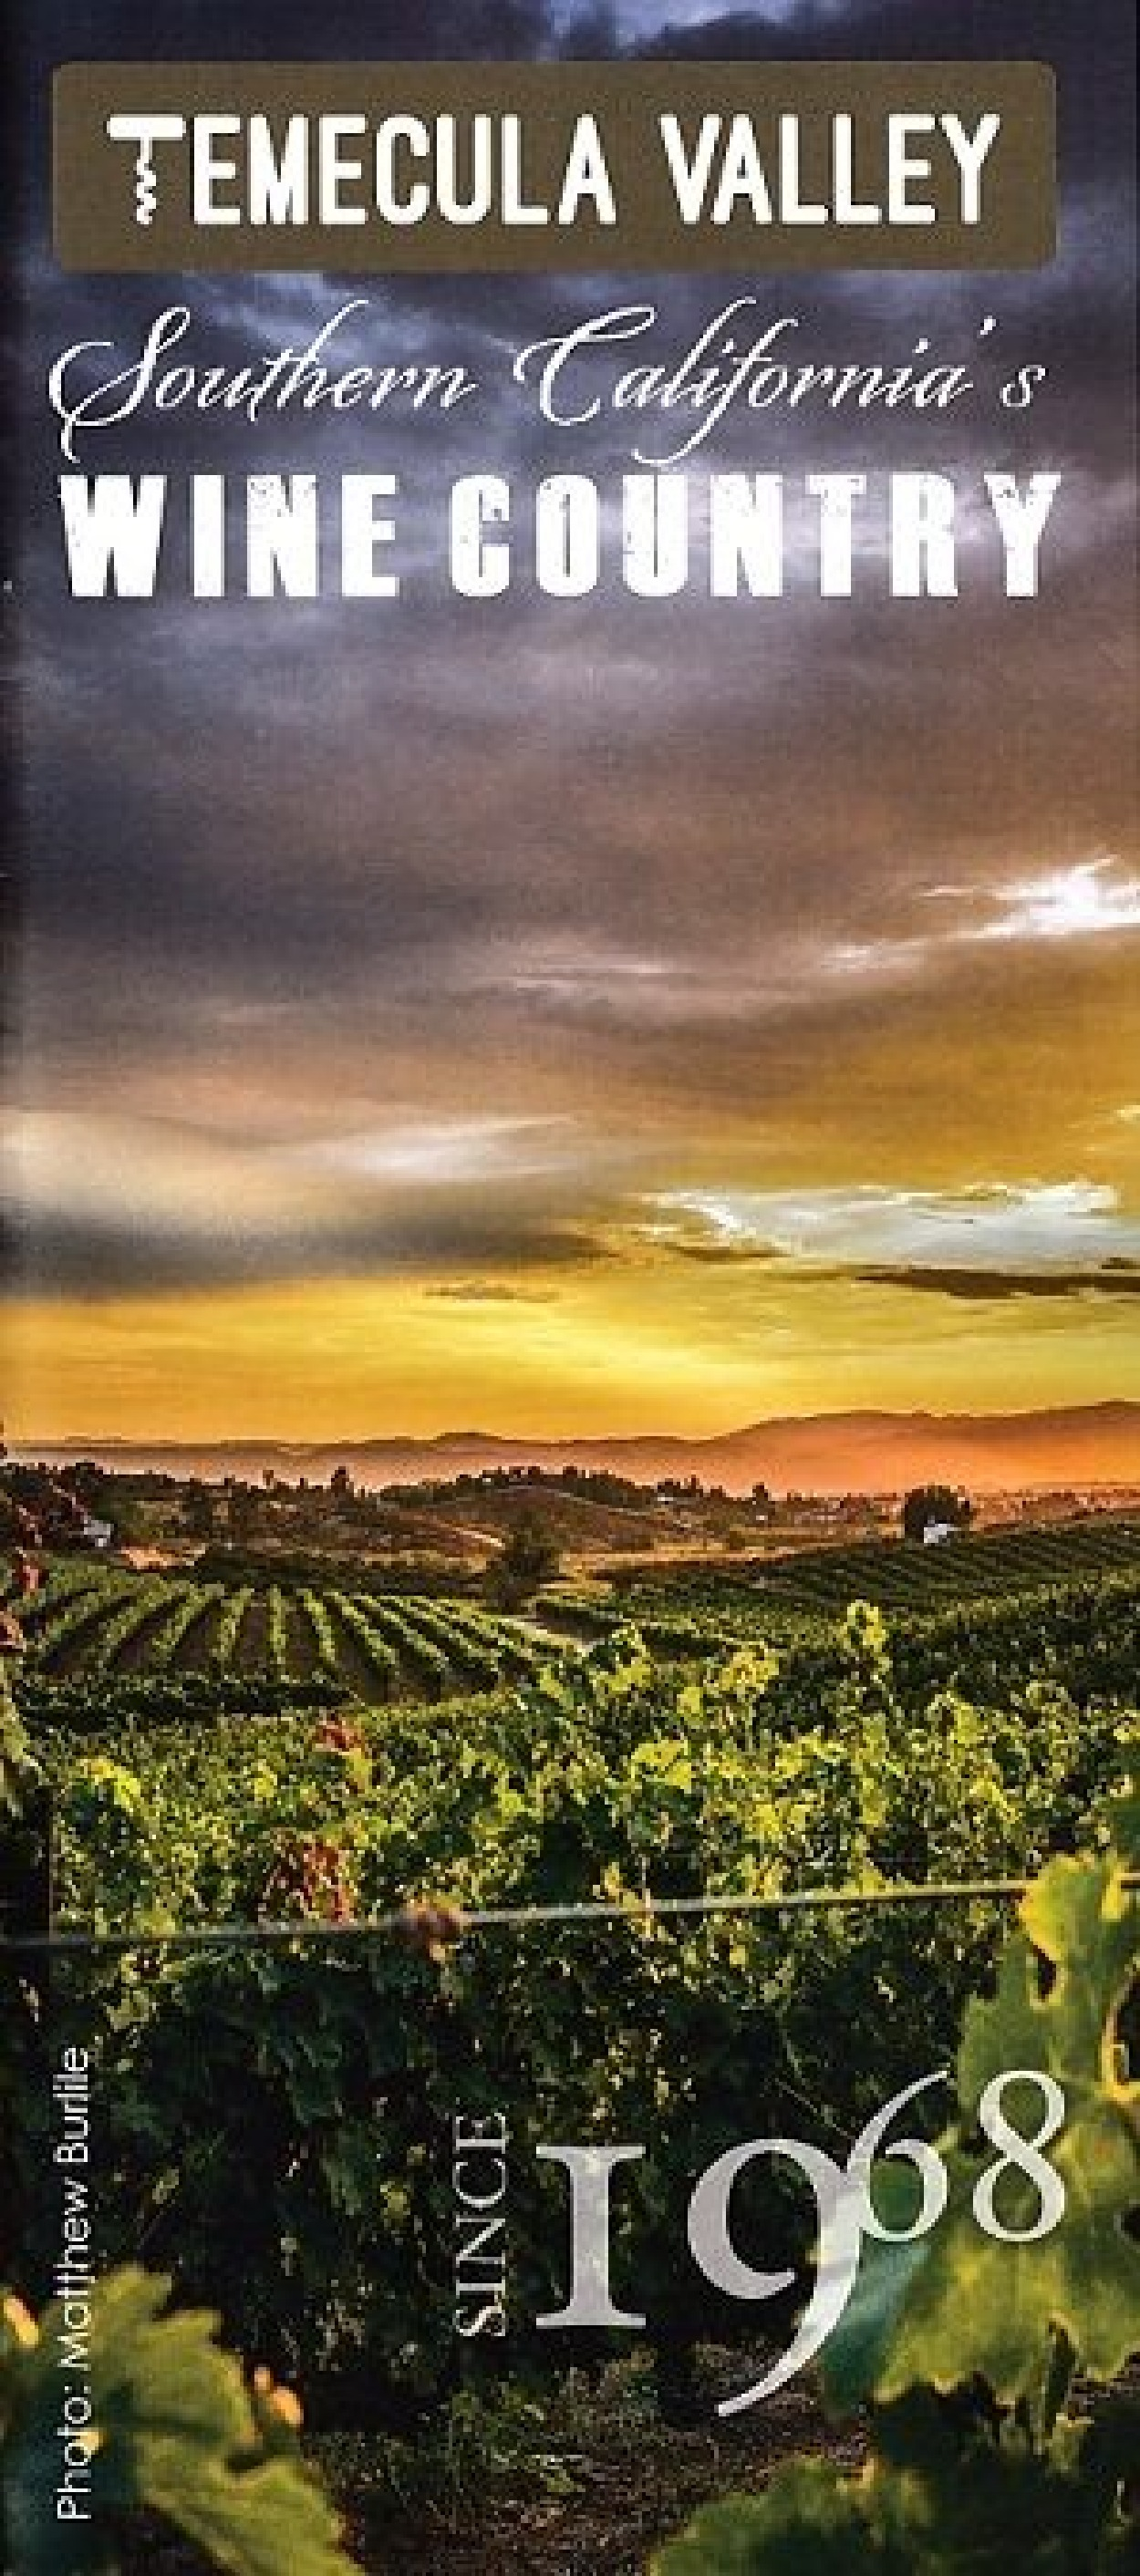 Temecula Valley Southern California S Wine Country